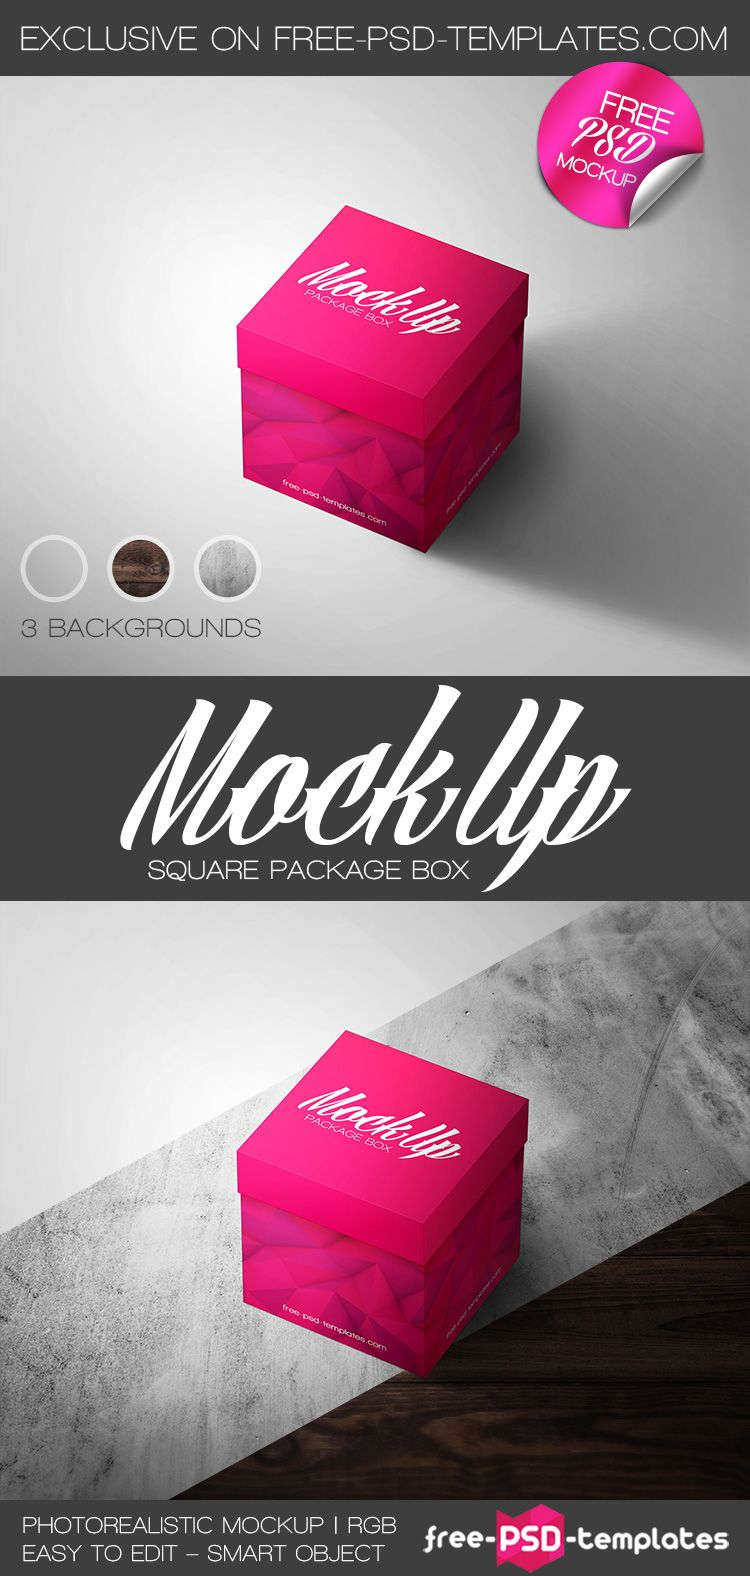 Download Free Square Package Box Free Psd Templates Free Photoshop Mockup Psd Box Packaging Psd Template Free Mockup